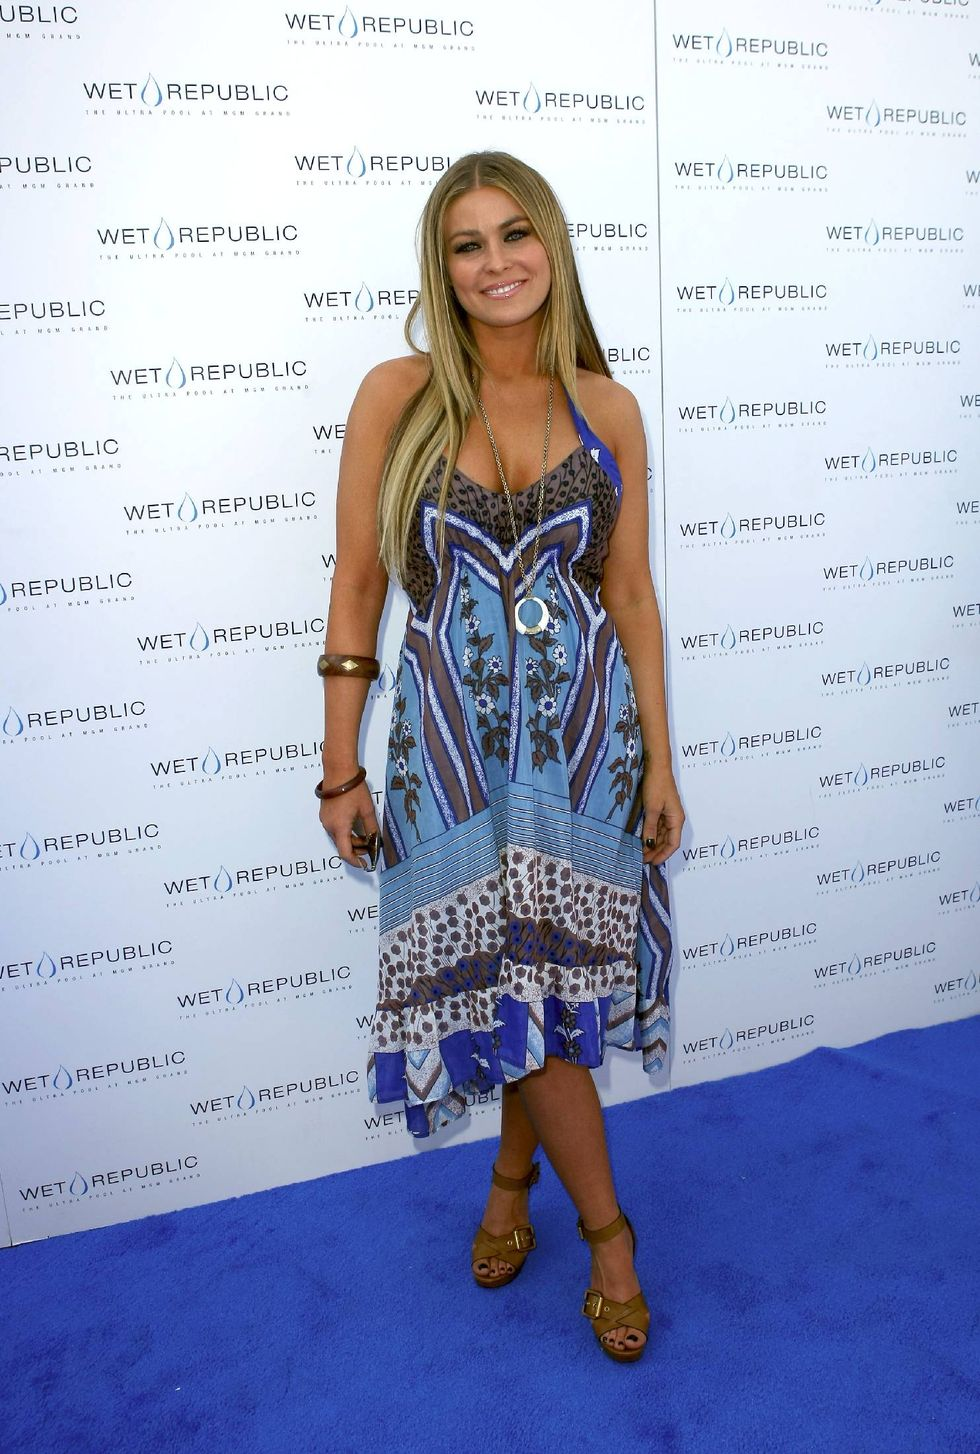 carmen-electra-wet-republics-2009-launch-of-daylife-sundays-in-las-vegas-01